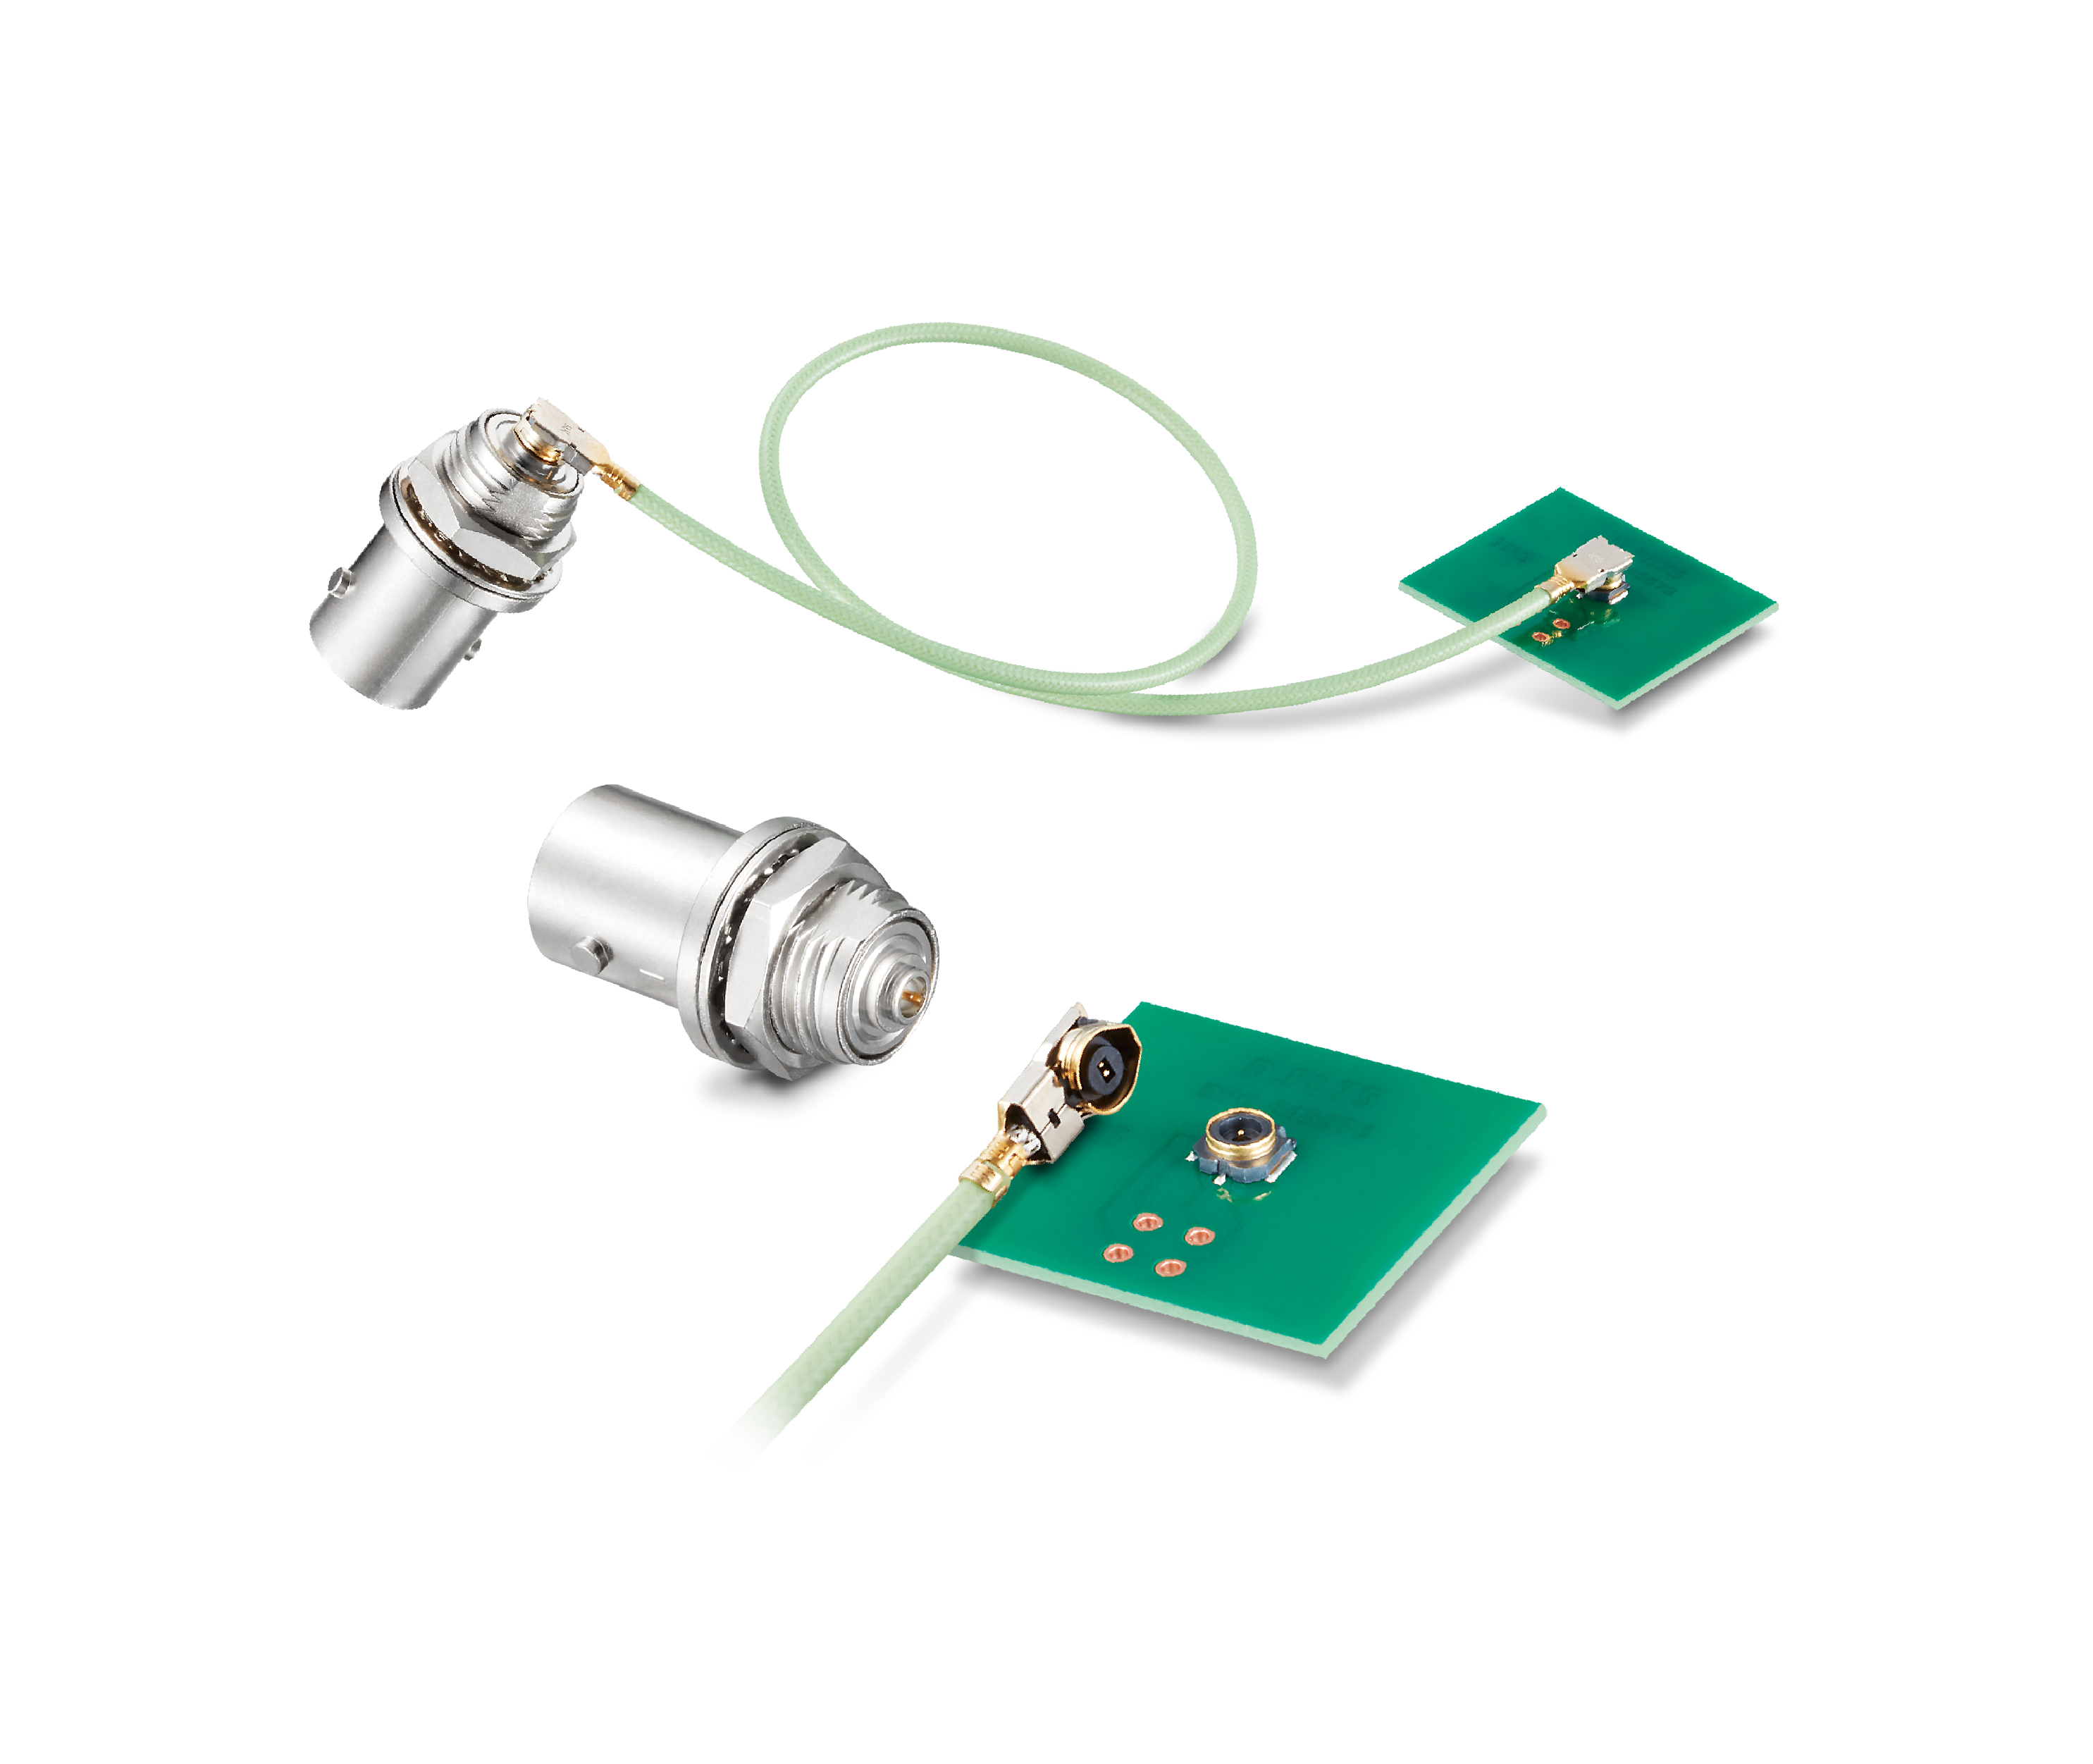 D.FL75 Series: Small 75Ω Coaxial Connector Supporting 12G-SDI